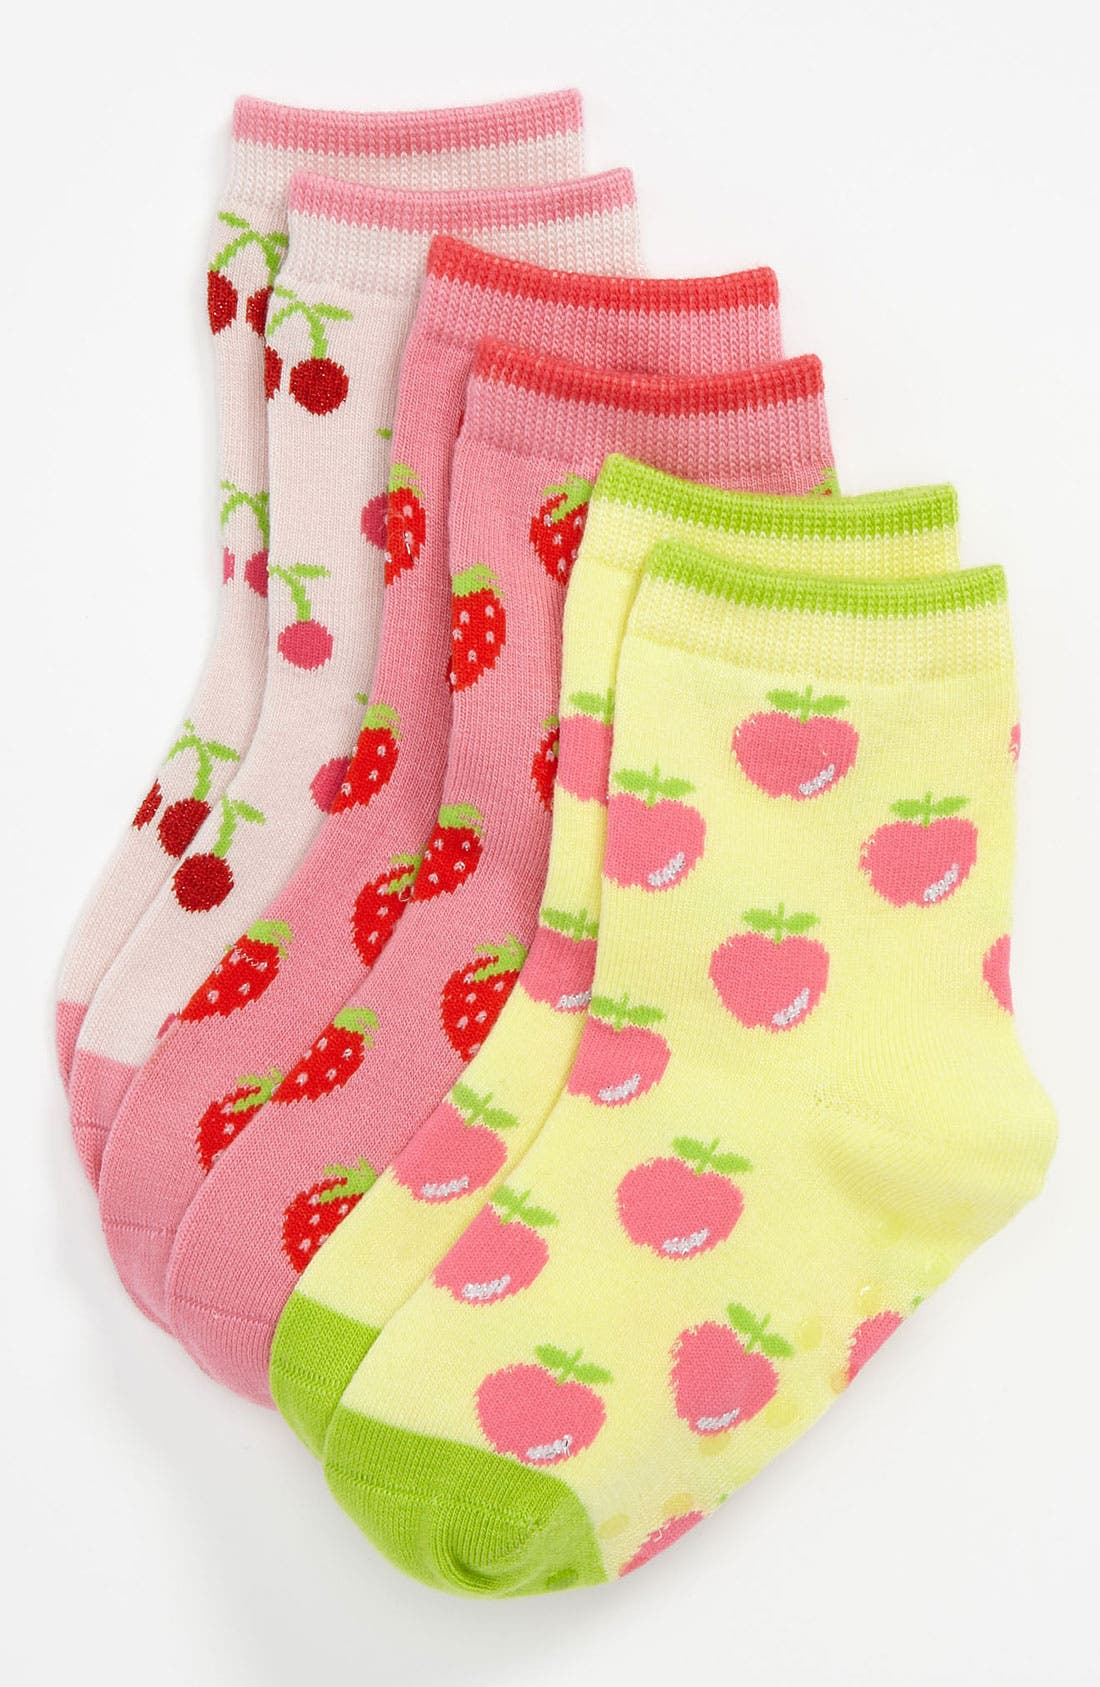 Alternate Image 1 Selected - Nordstrom 'Bright Bites' Crew Socks (3-Pack) (Girls)